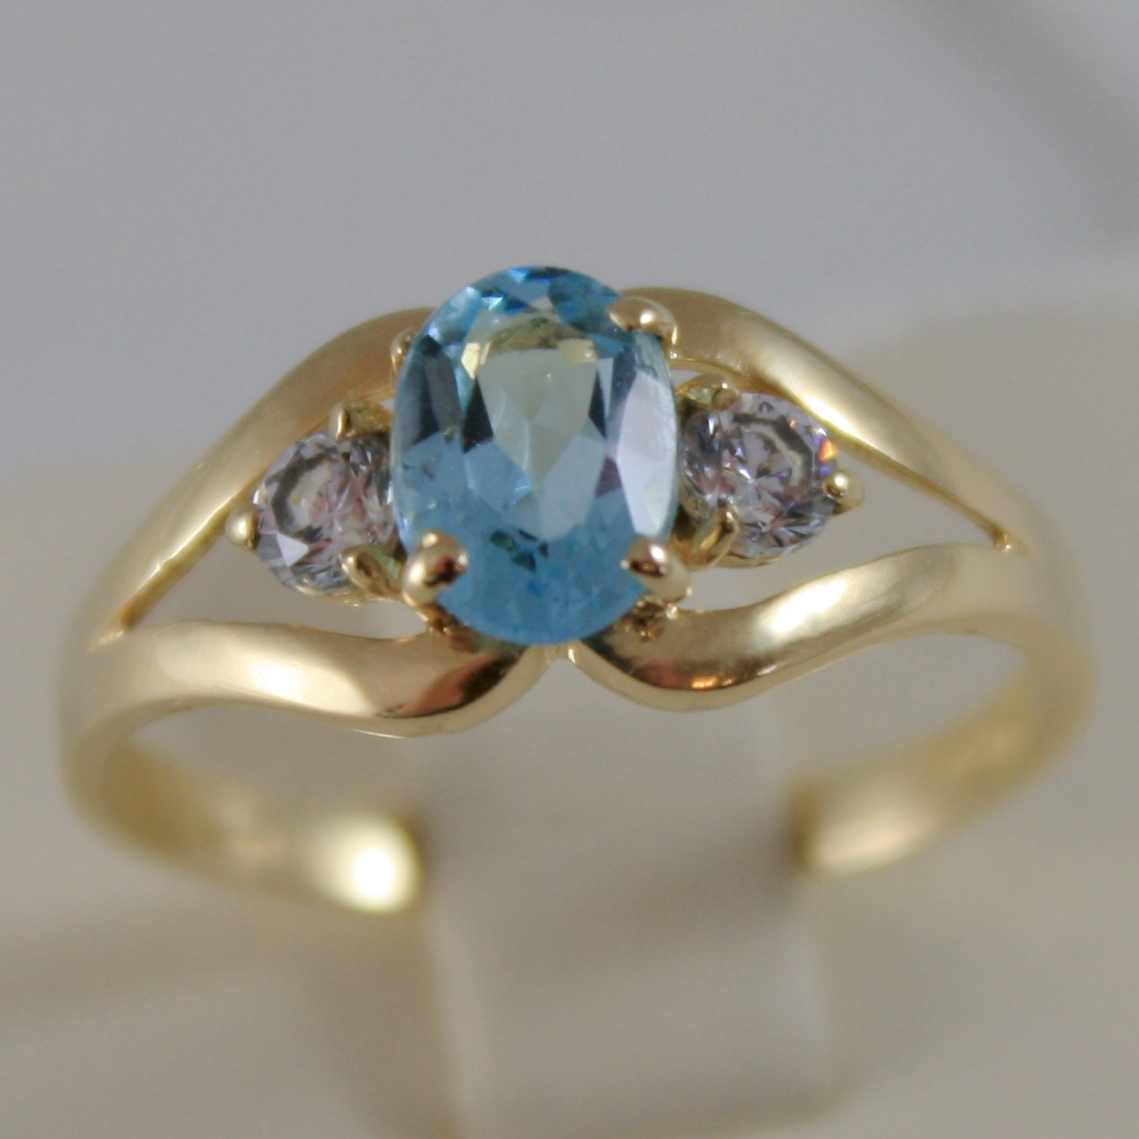 SOLID 18K YELLOW GOLD RING WITH BLUE TOPAZ AND CUBIC ZIRCONIA, MADE IN ITALY